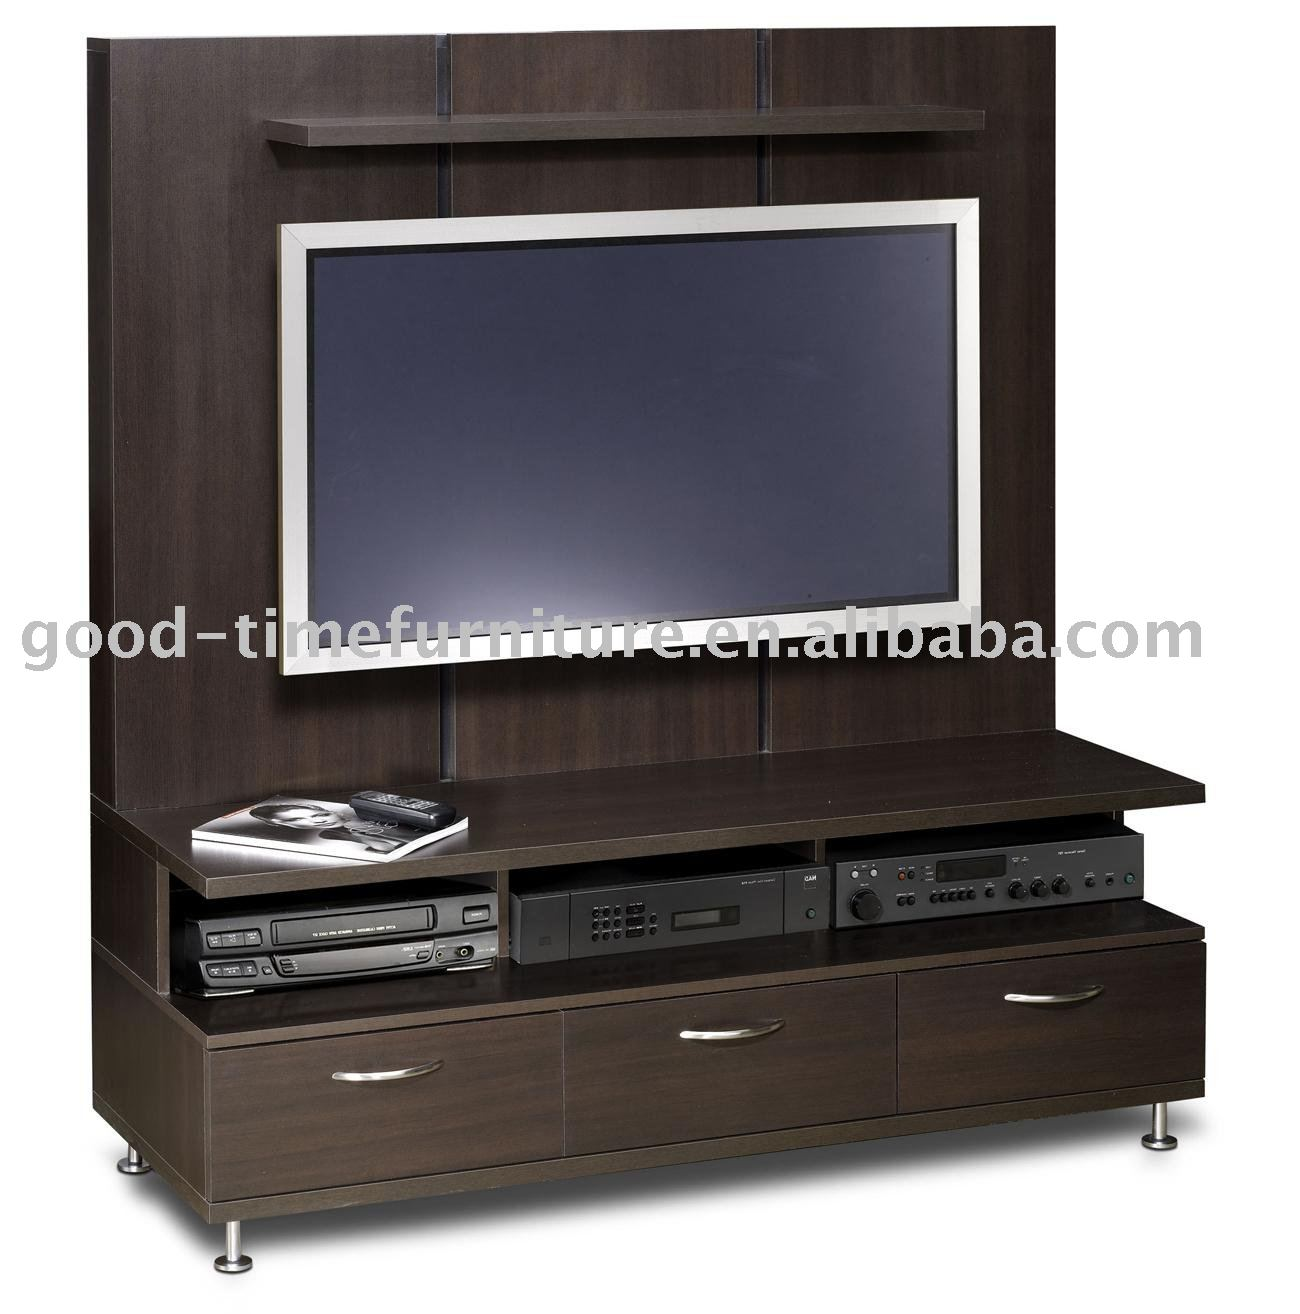 wall mounted tv cabinet design wall mounted tv cabinet design suppliers and at alibabacom - Wall Mounted Tv Cabinet